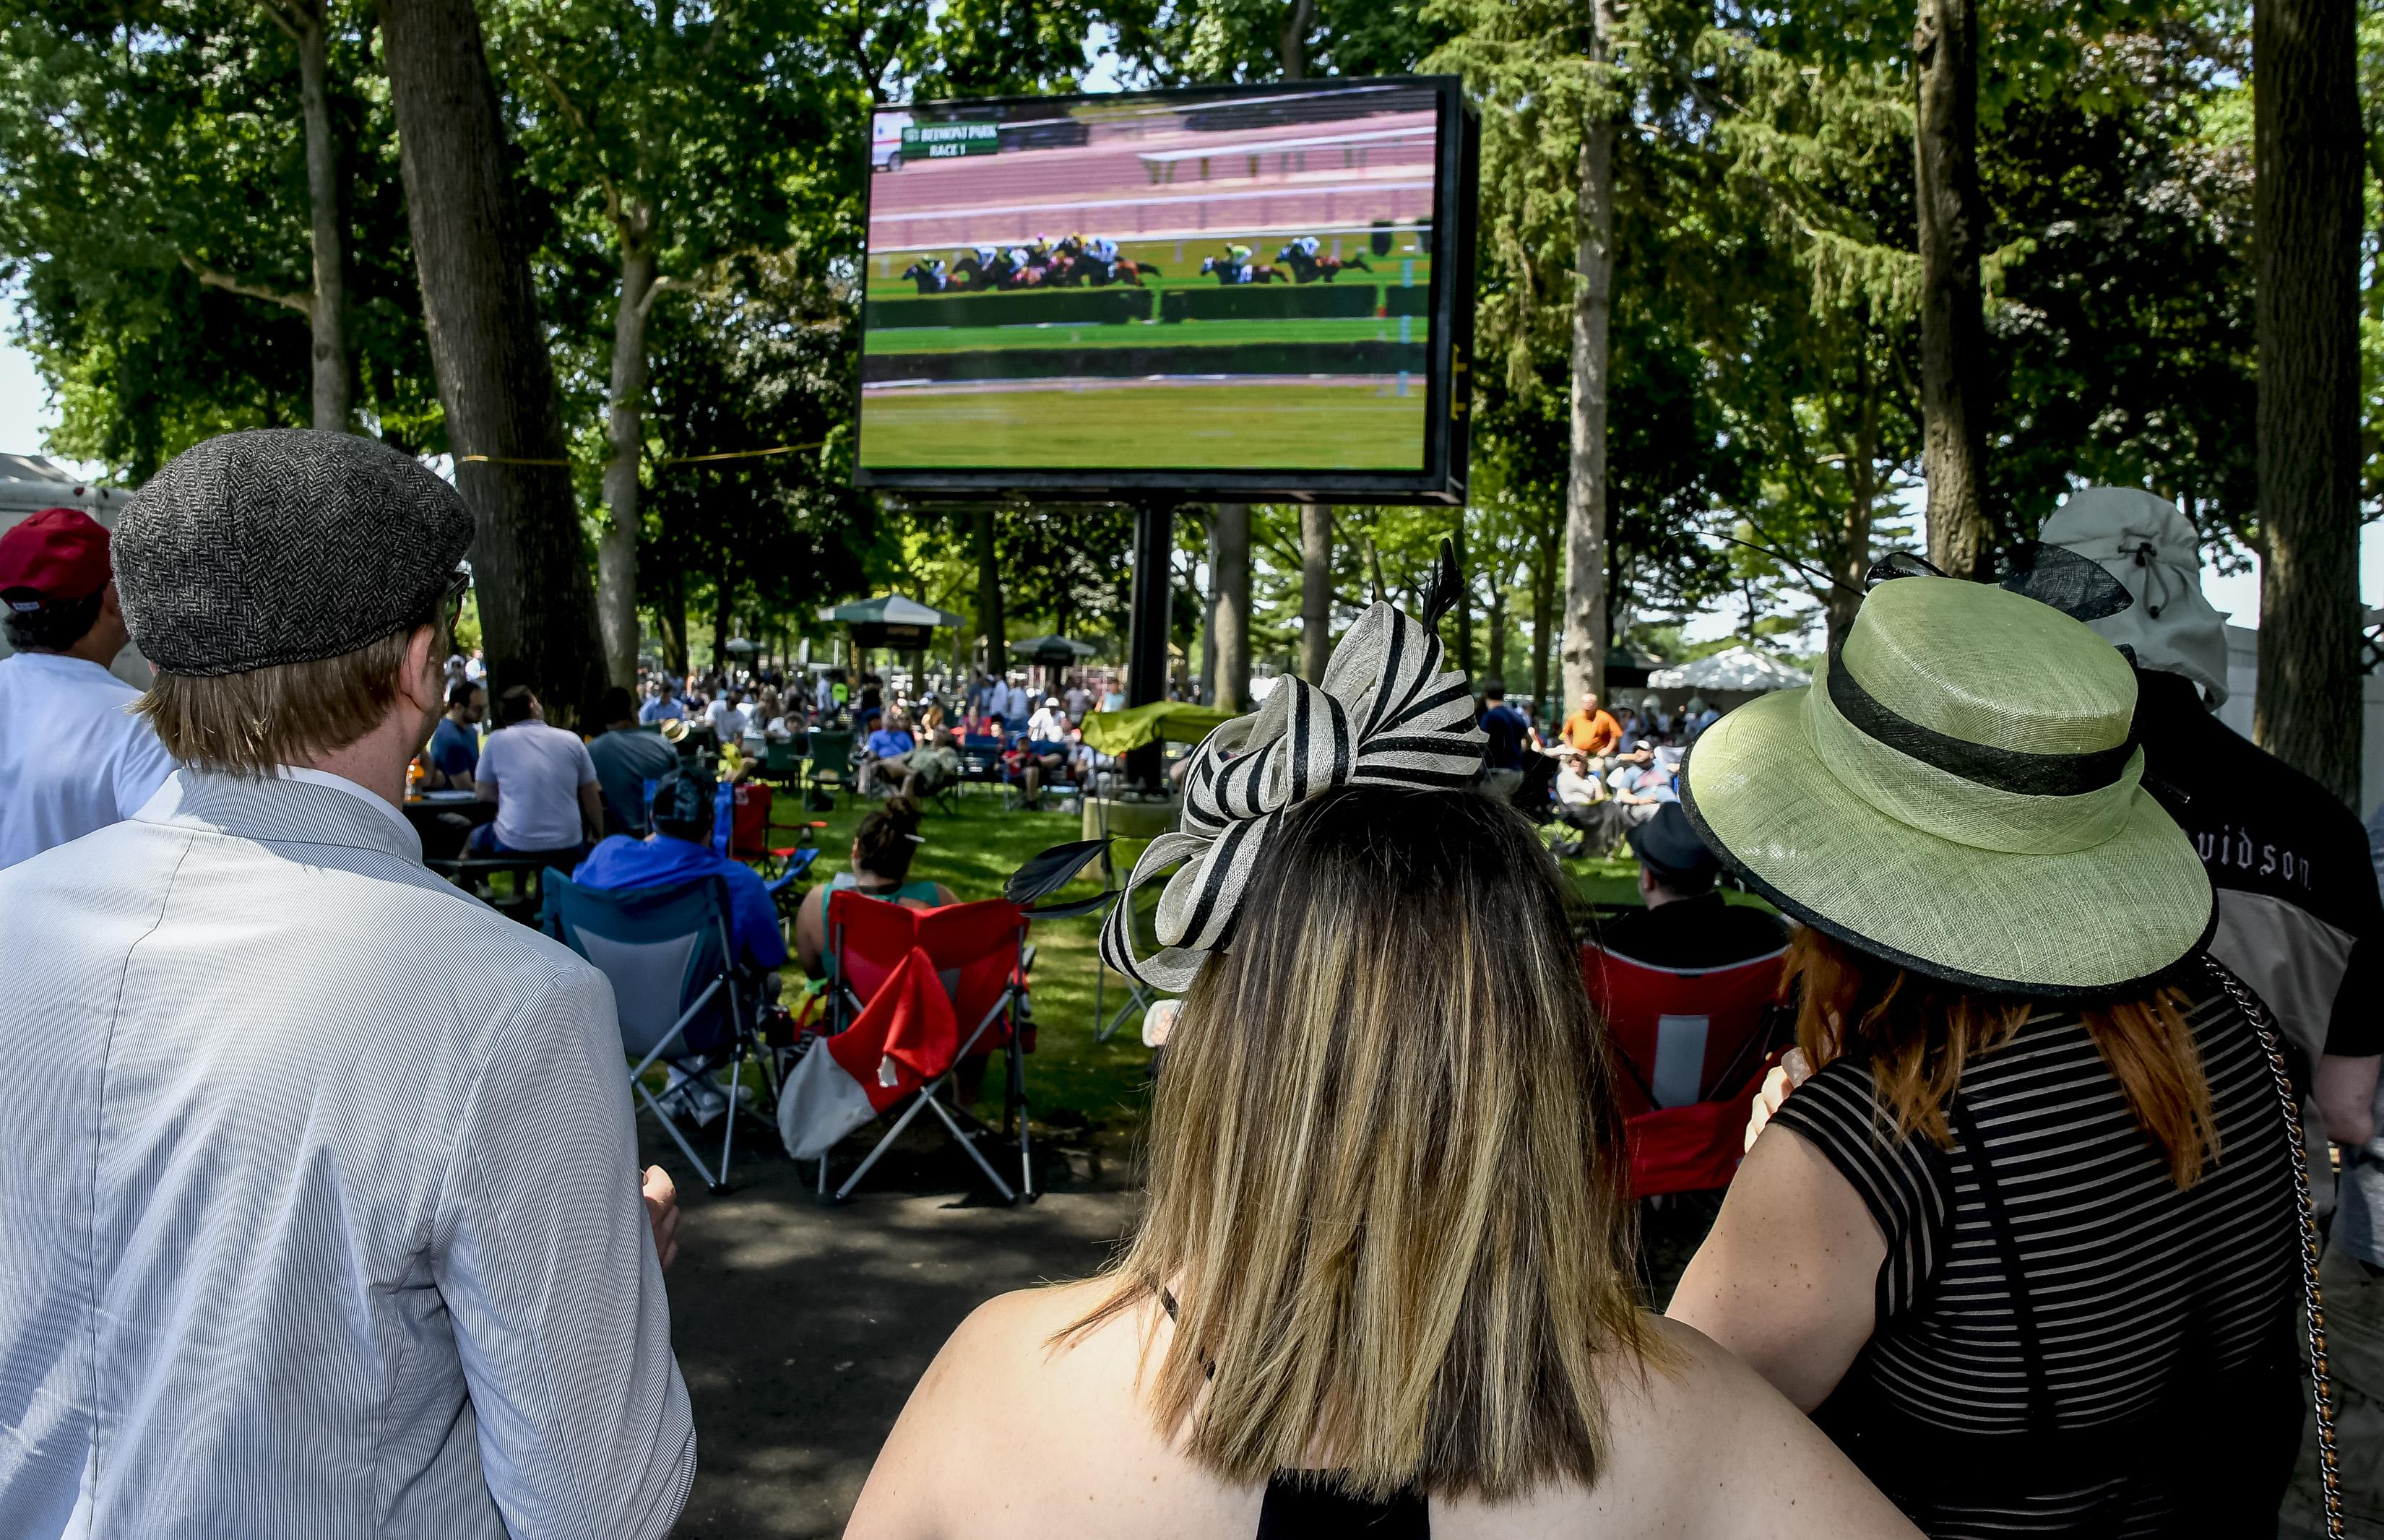 Fans watch Belmont day racing from the backyard.